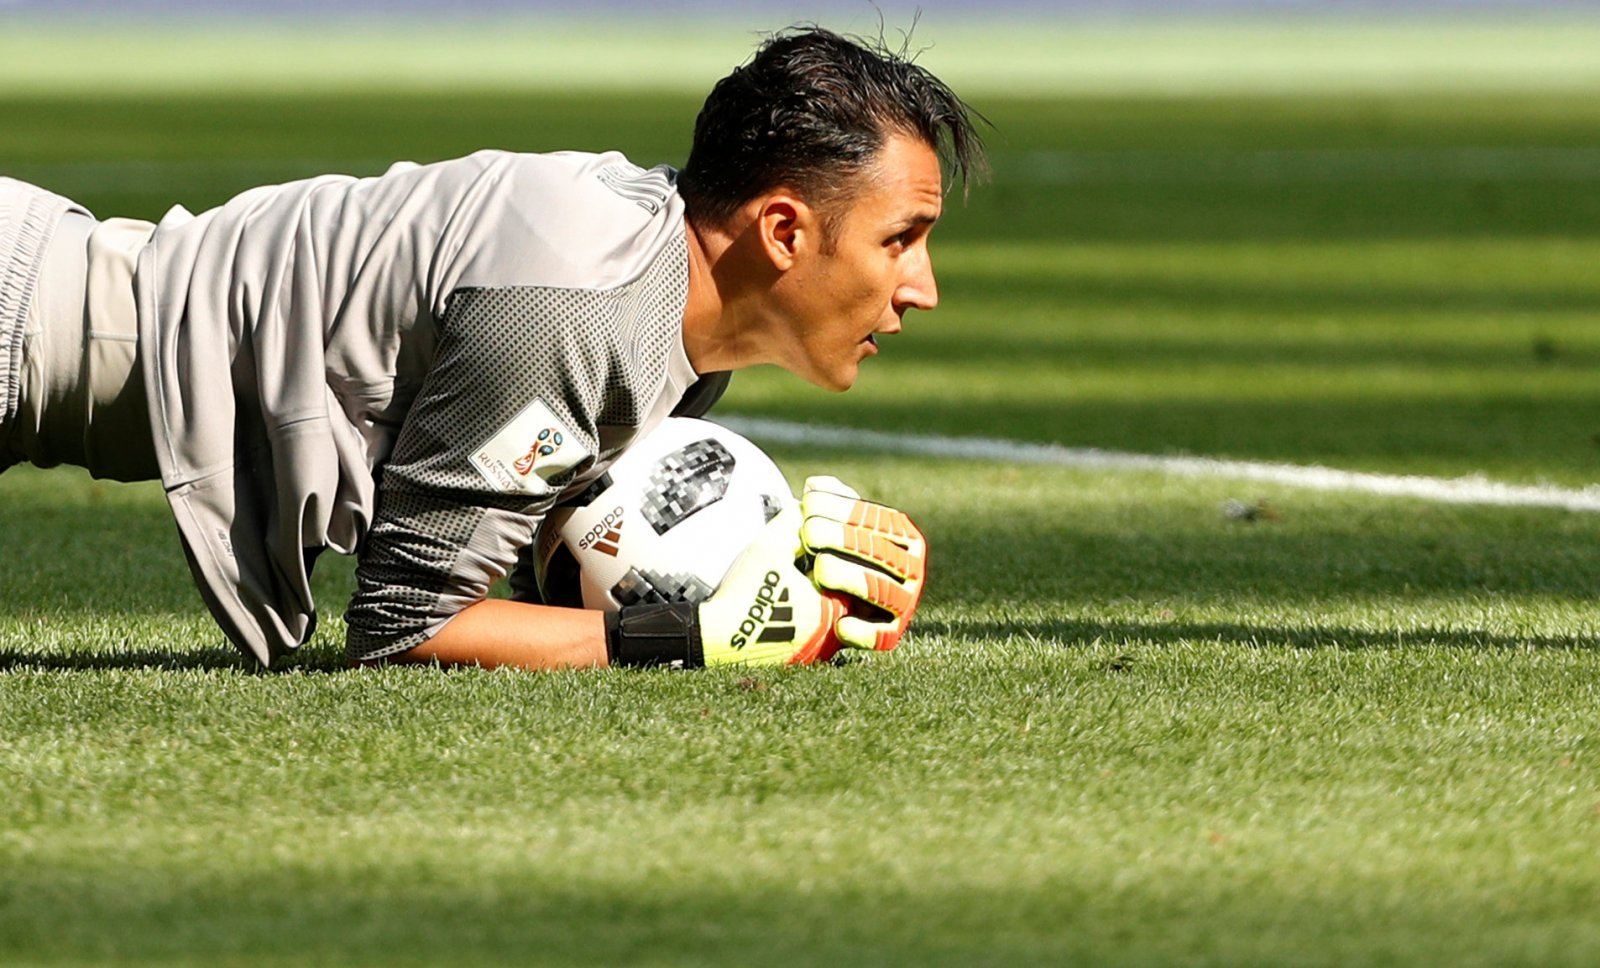 Real Madrid: PSG make approach for Navas